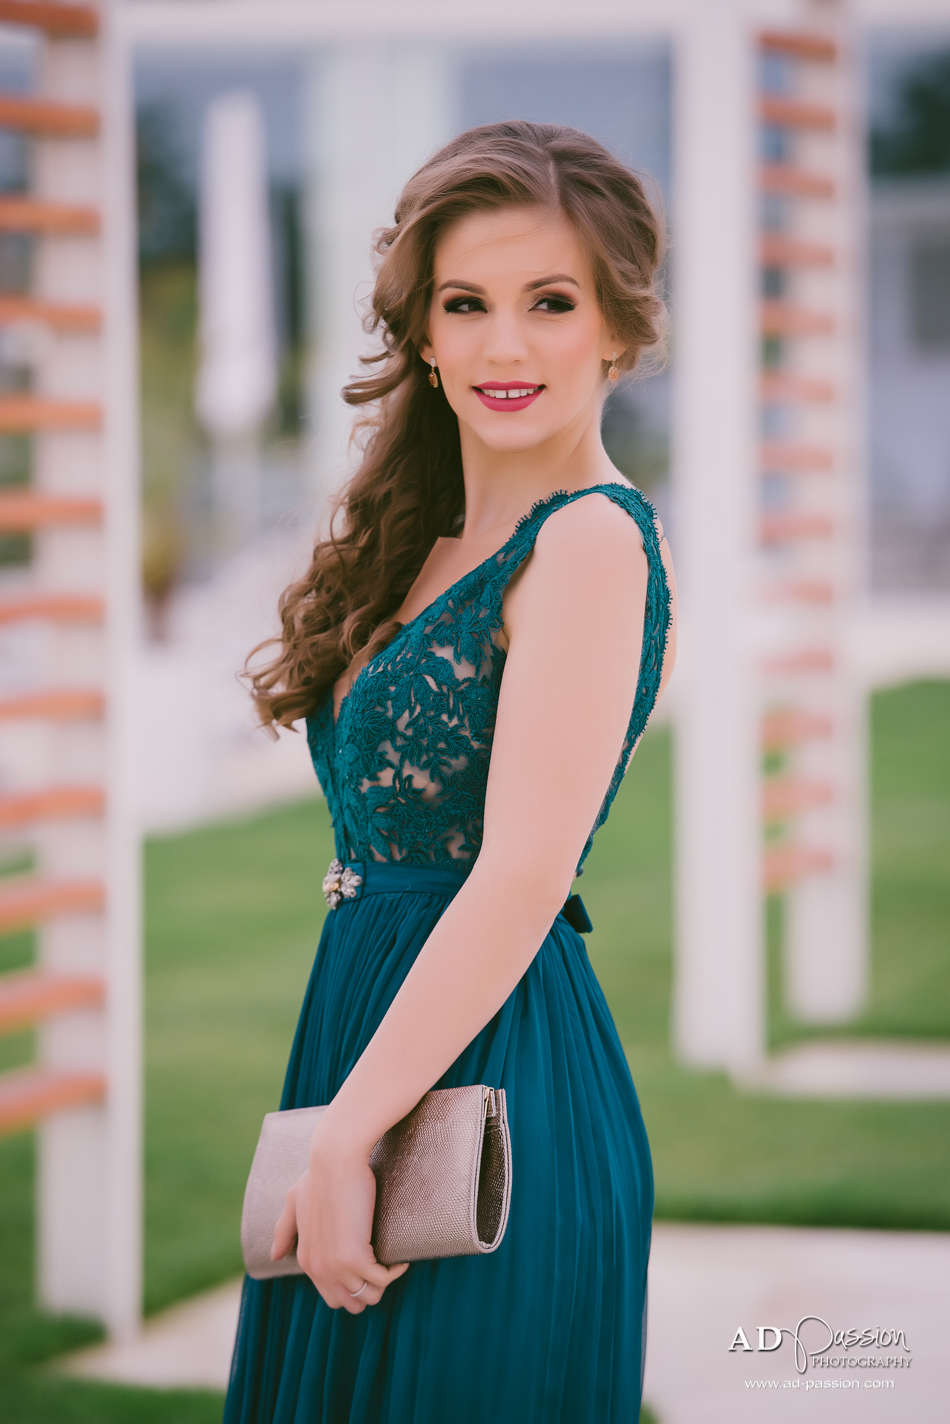 AD Passion Photography | 20150625_claudia-irene-fotograf-absolventi-sedinta-foto-banchet_0004 | Adelin, Dida, fotograf profesionist, fotograf de nunta, fotografie de nunta, fotograf Timisoara, fotograf Craiova, fotograf Bucuresti, fotograf Arad, nunta Timisoara, nunta Arad, nunta Bucuresti, nunta Craiova